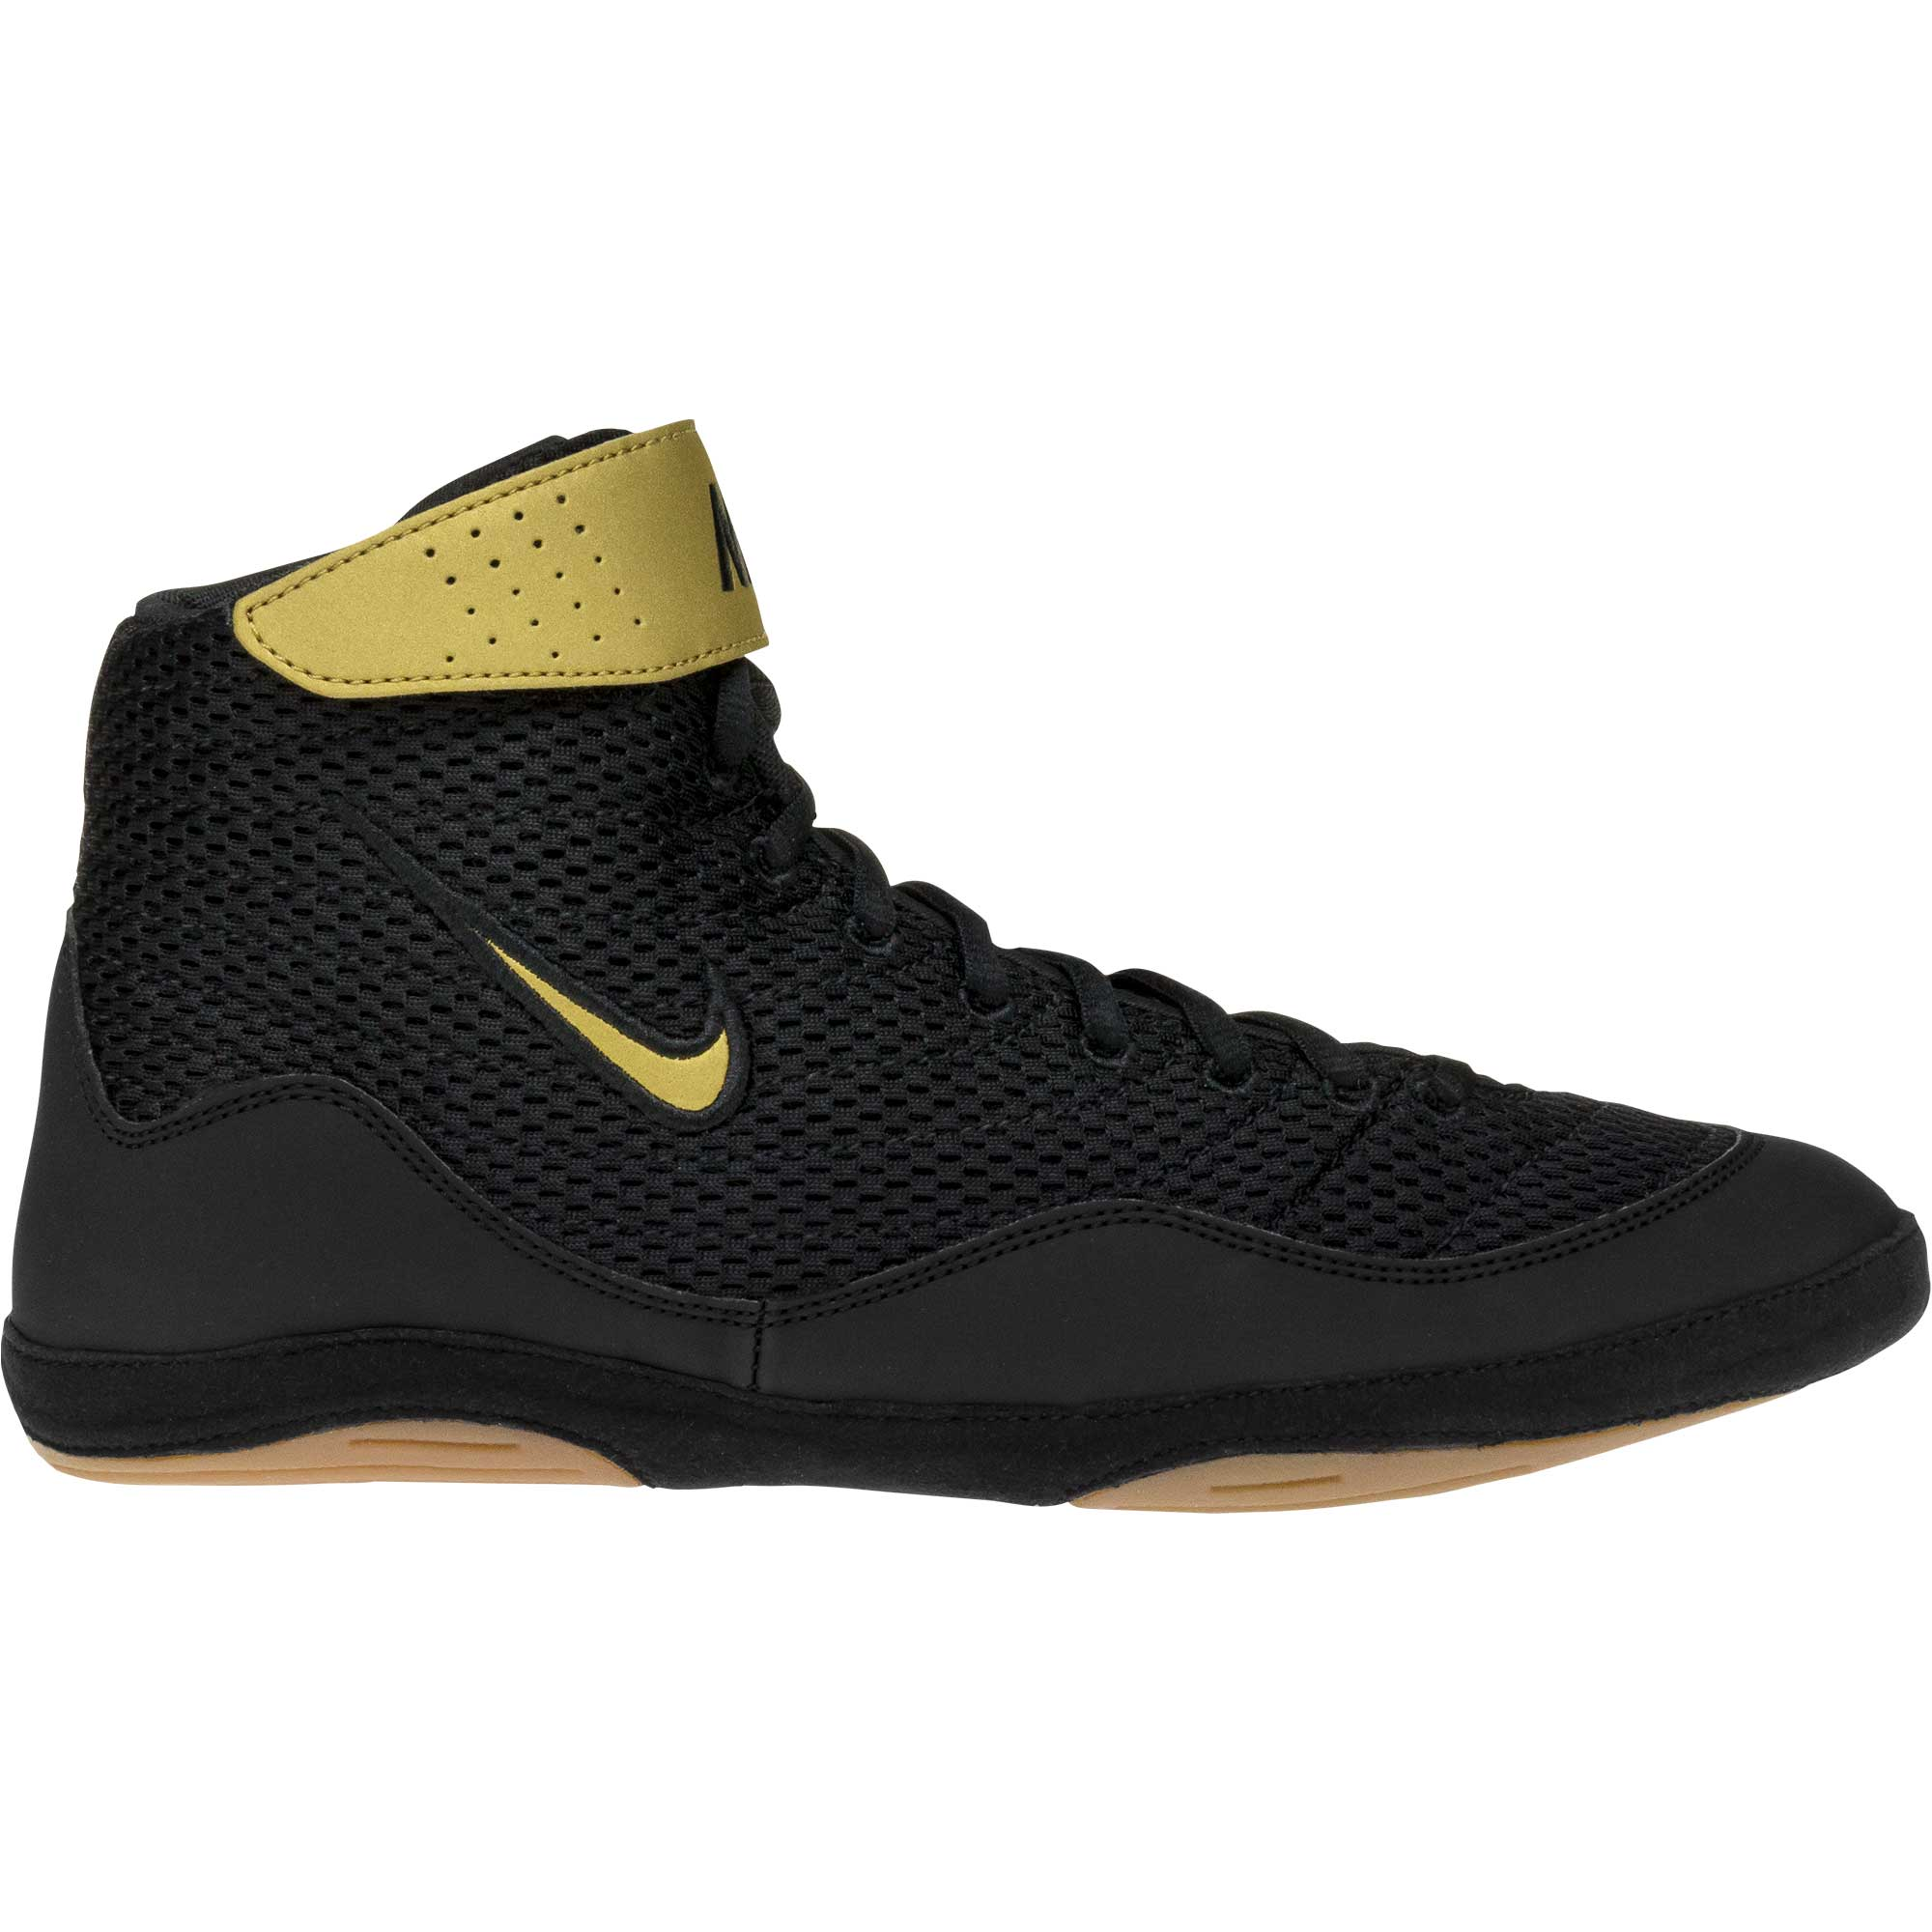 d23a9a2be79 Nike Inflict 3 Shoes